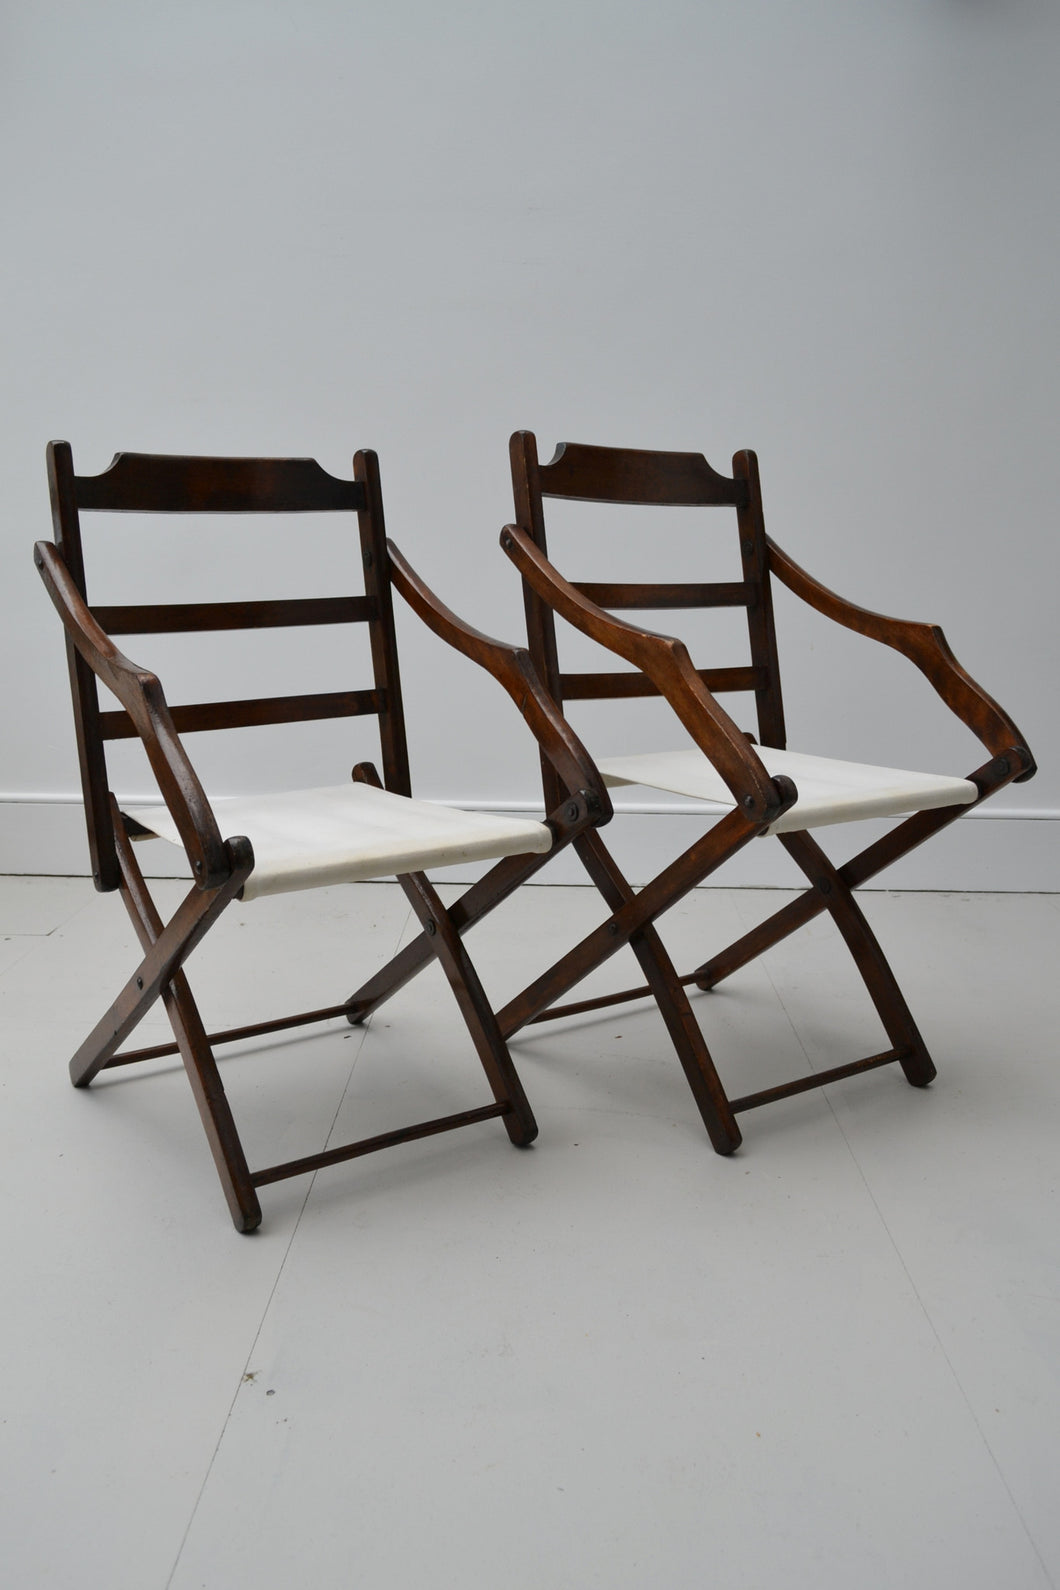 Set of 4 Vintage Cricket Club Folding Chairs - MCC - 1930's/1940's - SOLD